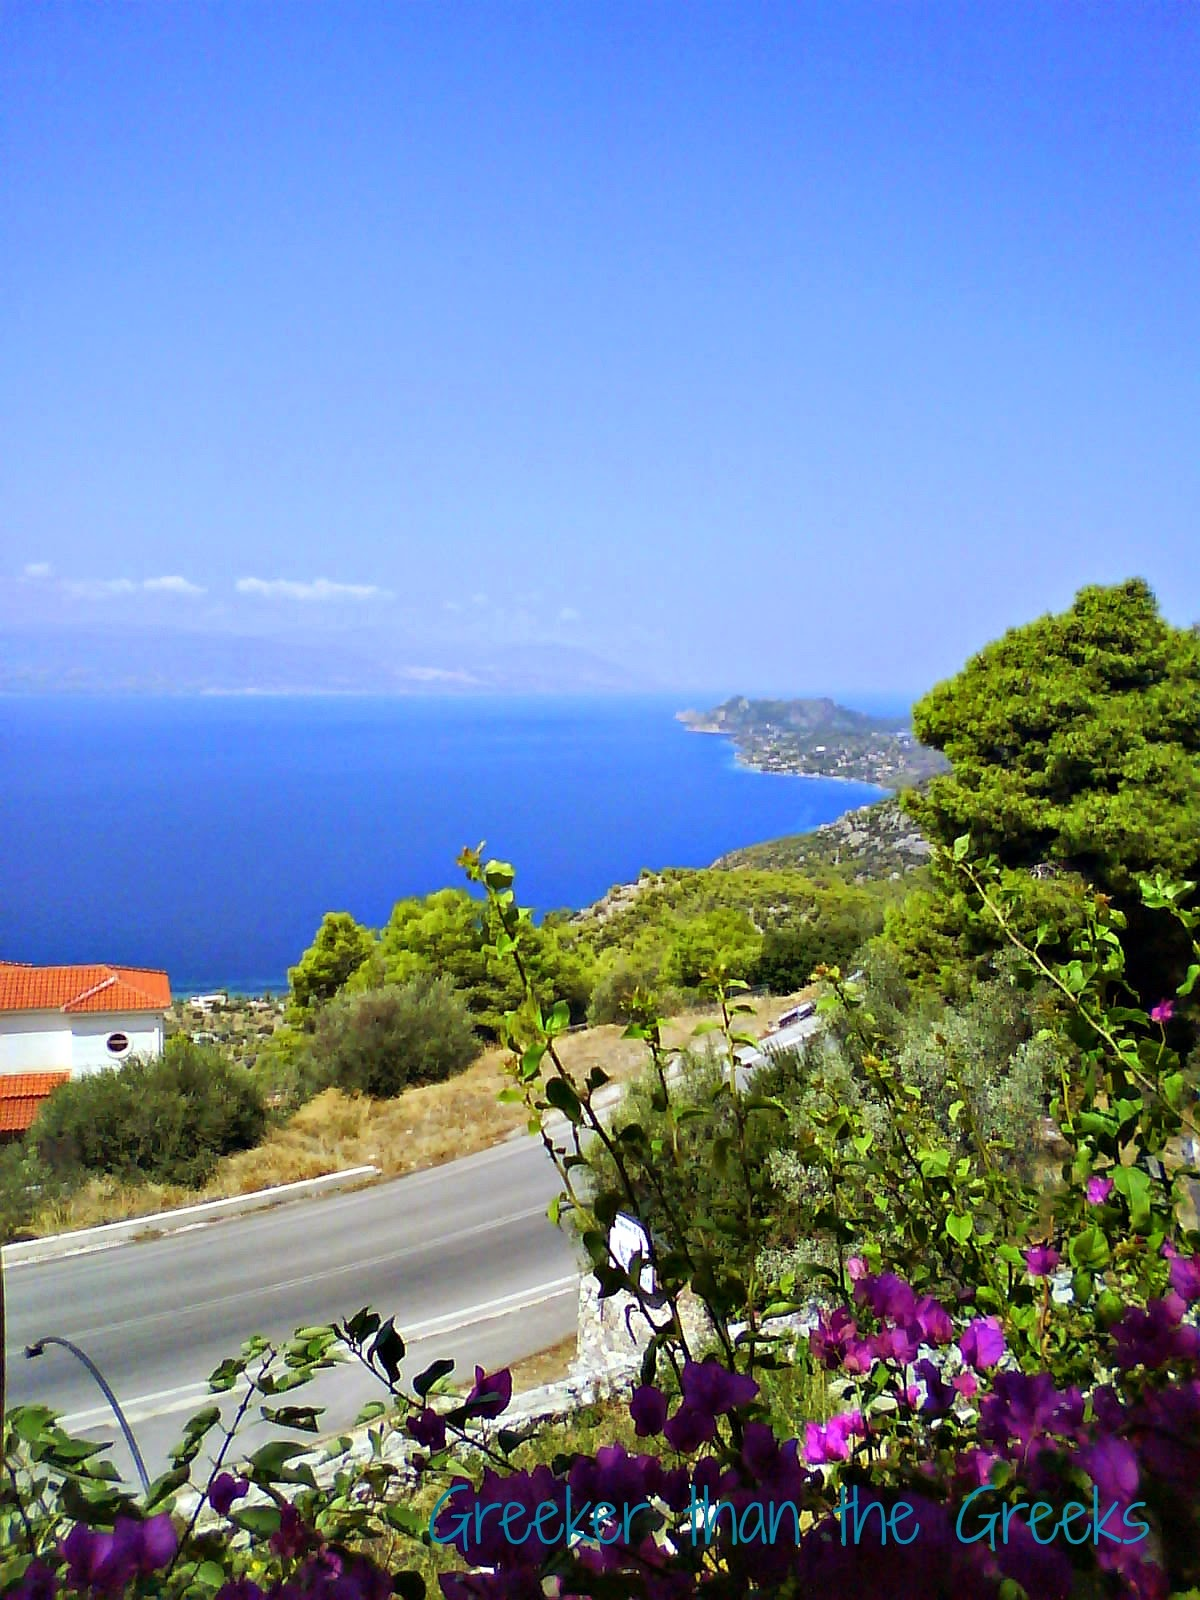 Just one of the magnificent views of Greece